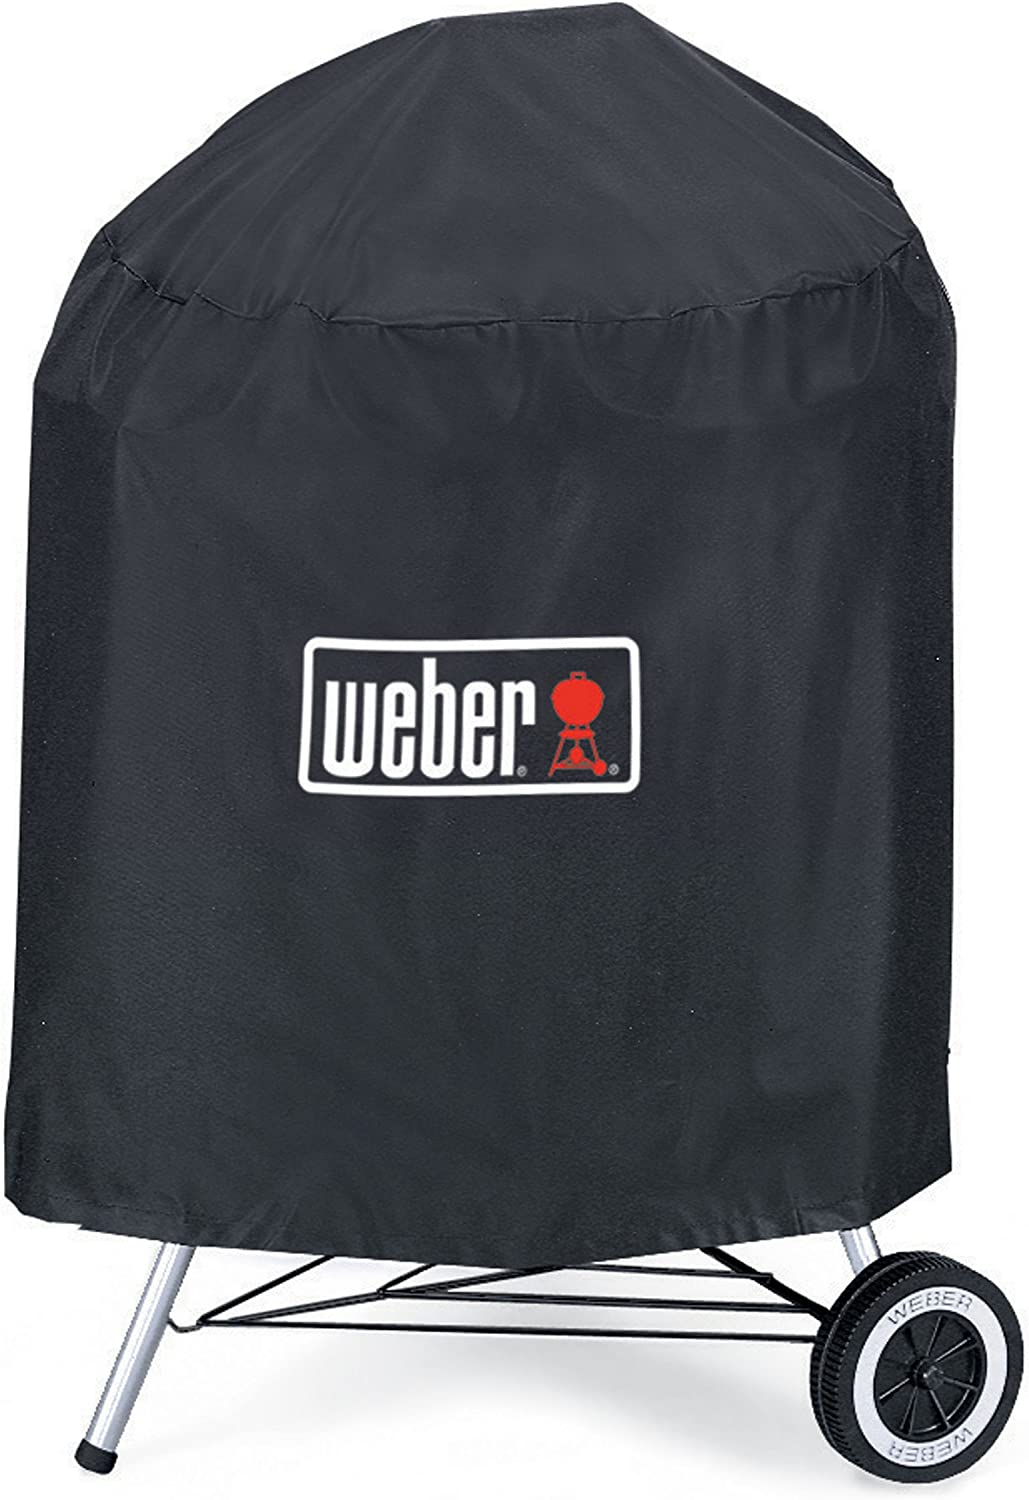 Weber 7452 Premium Kettle Cover, Fits 18-1/2-Inch Charcoal Grills